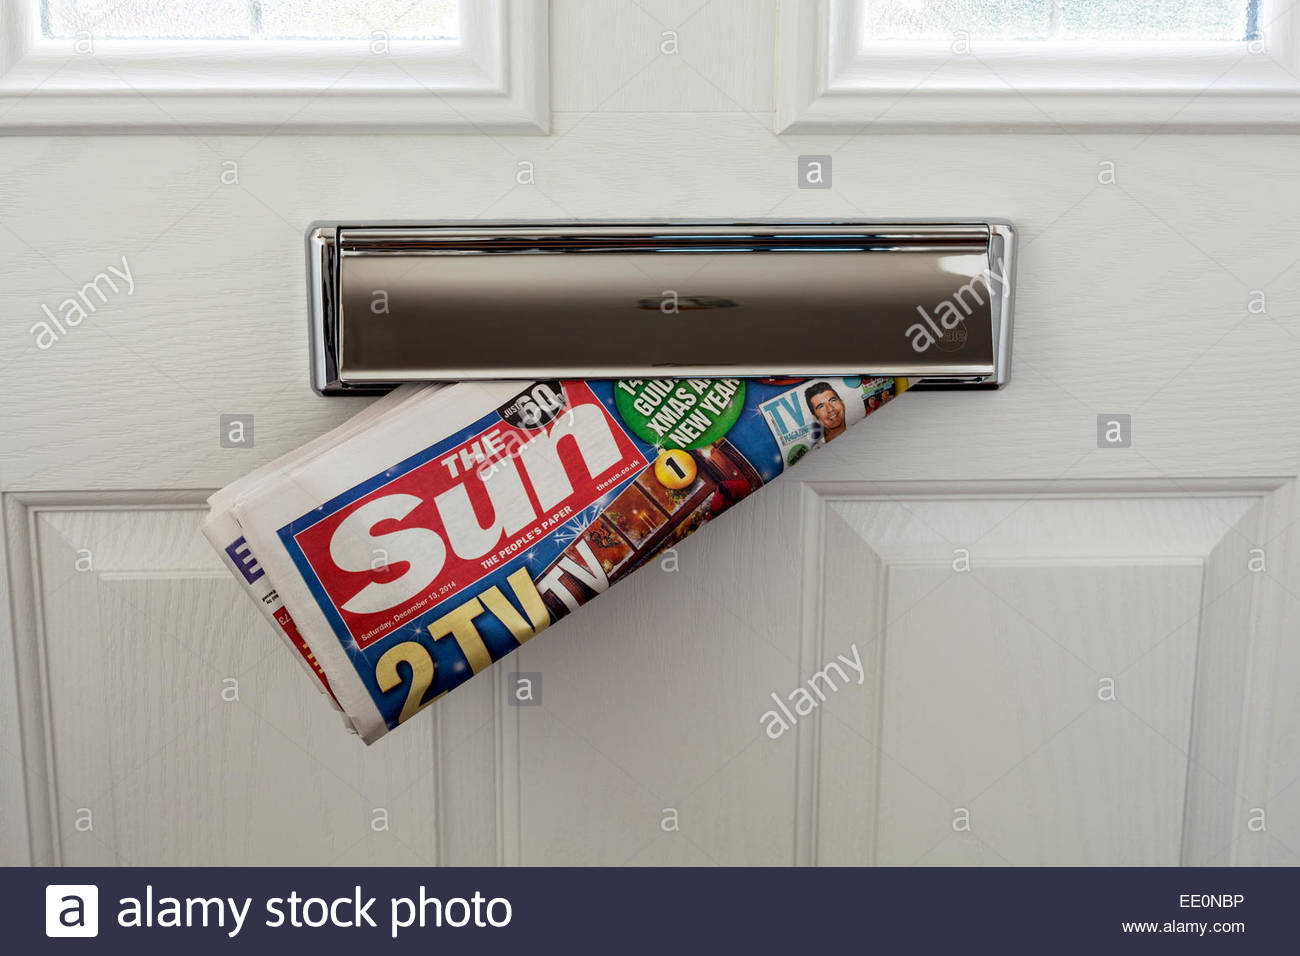 The Sun newspaper delivered through a letterbox - Stock Image